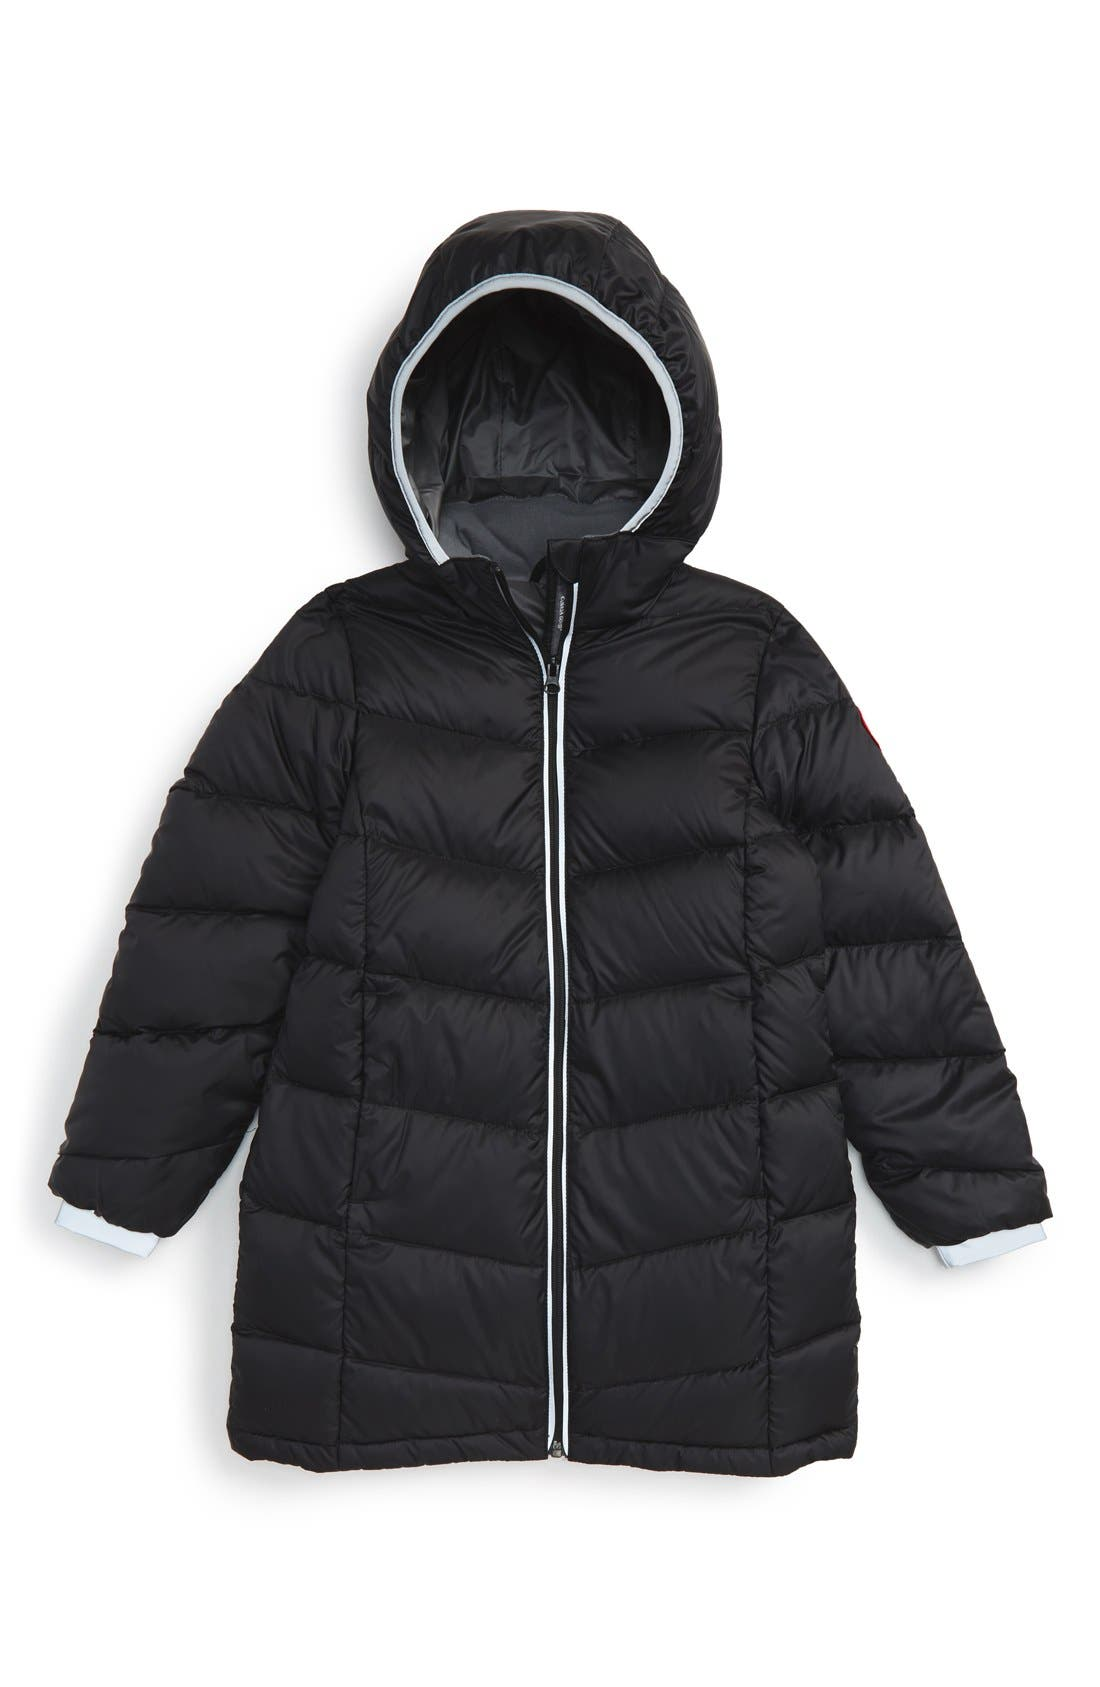 'Madeline' Hooded Down Jacket,                             Main thumbnail 1, color,                             001